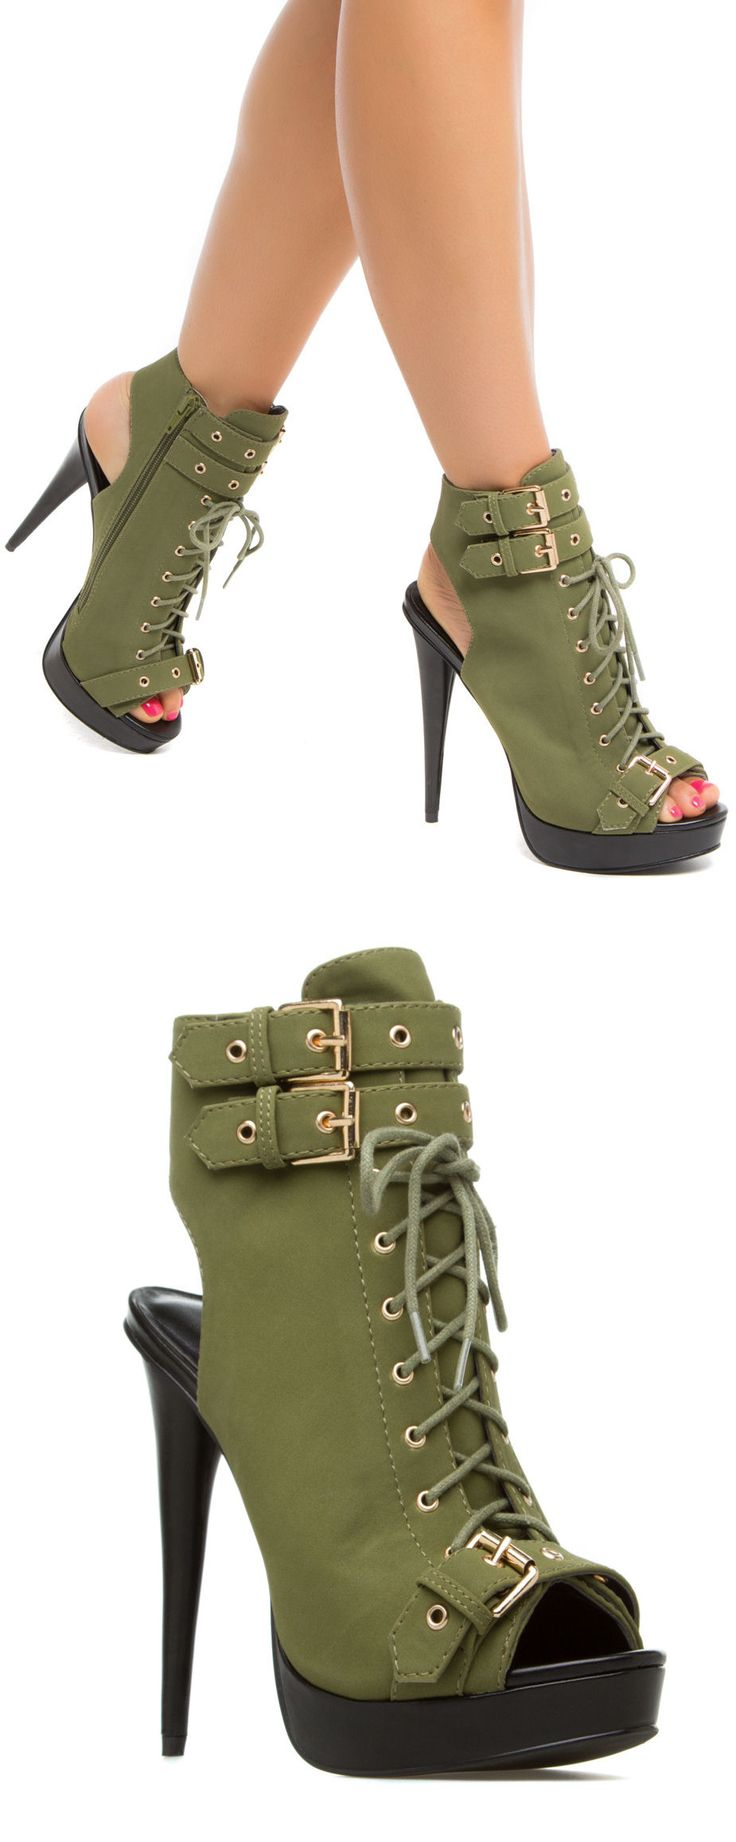 OMG These Shoes Are to Die For !!